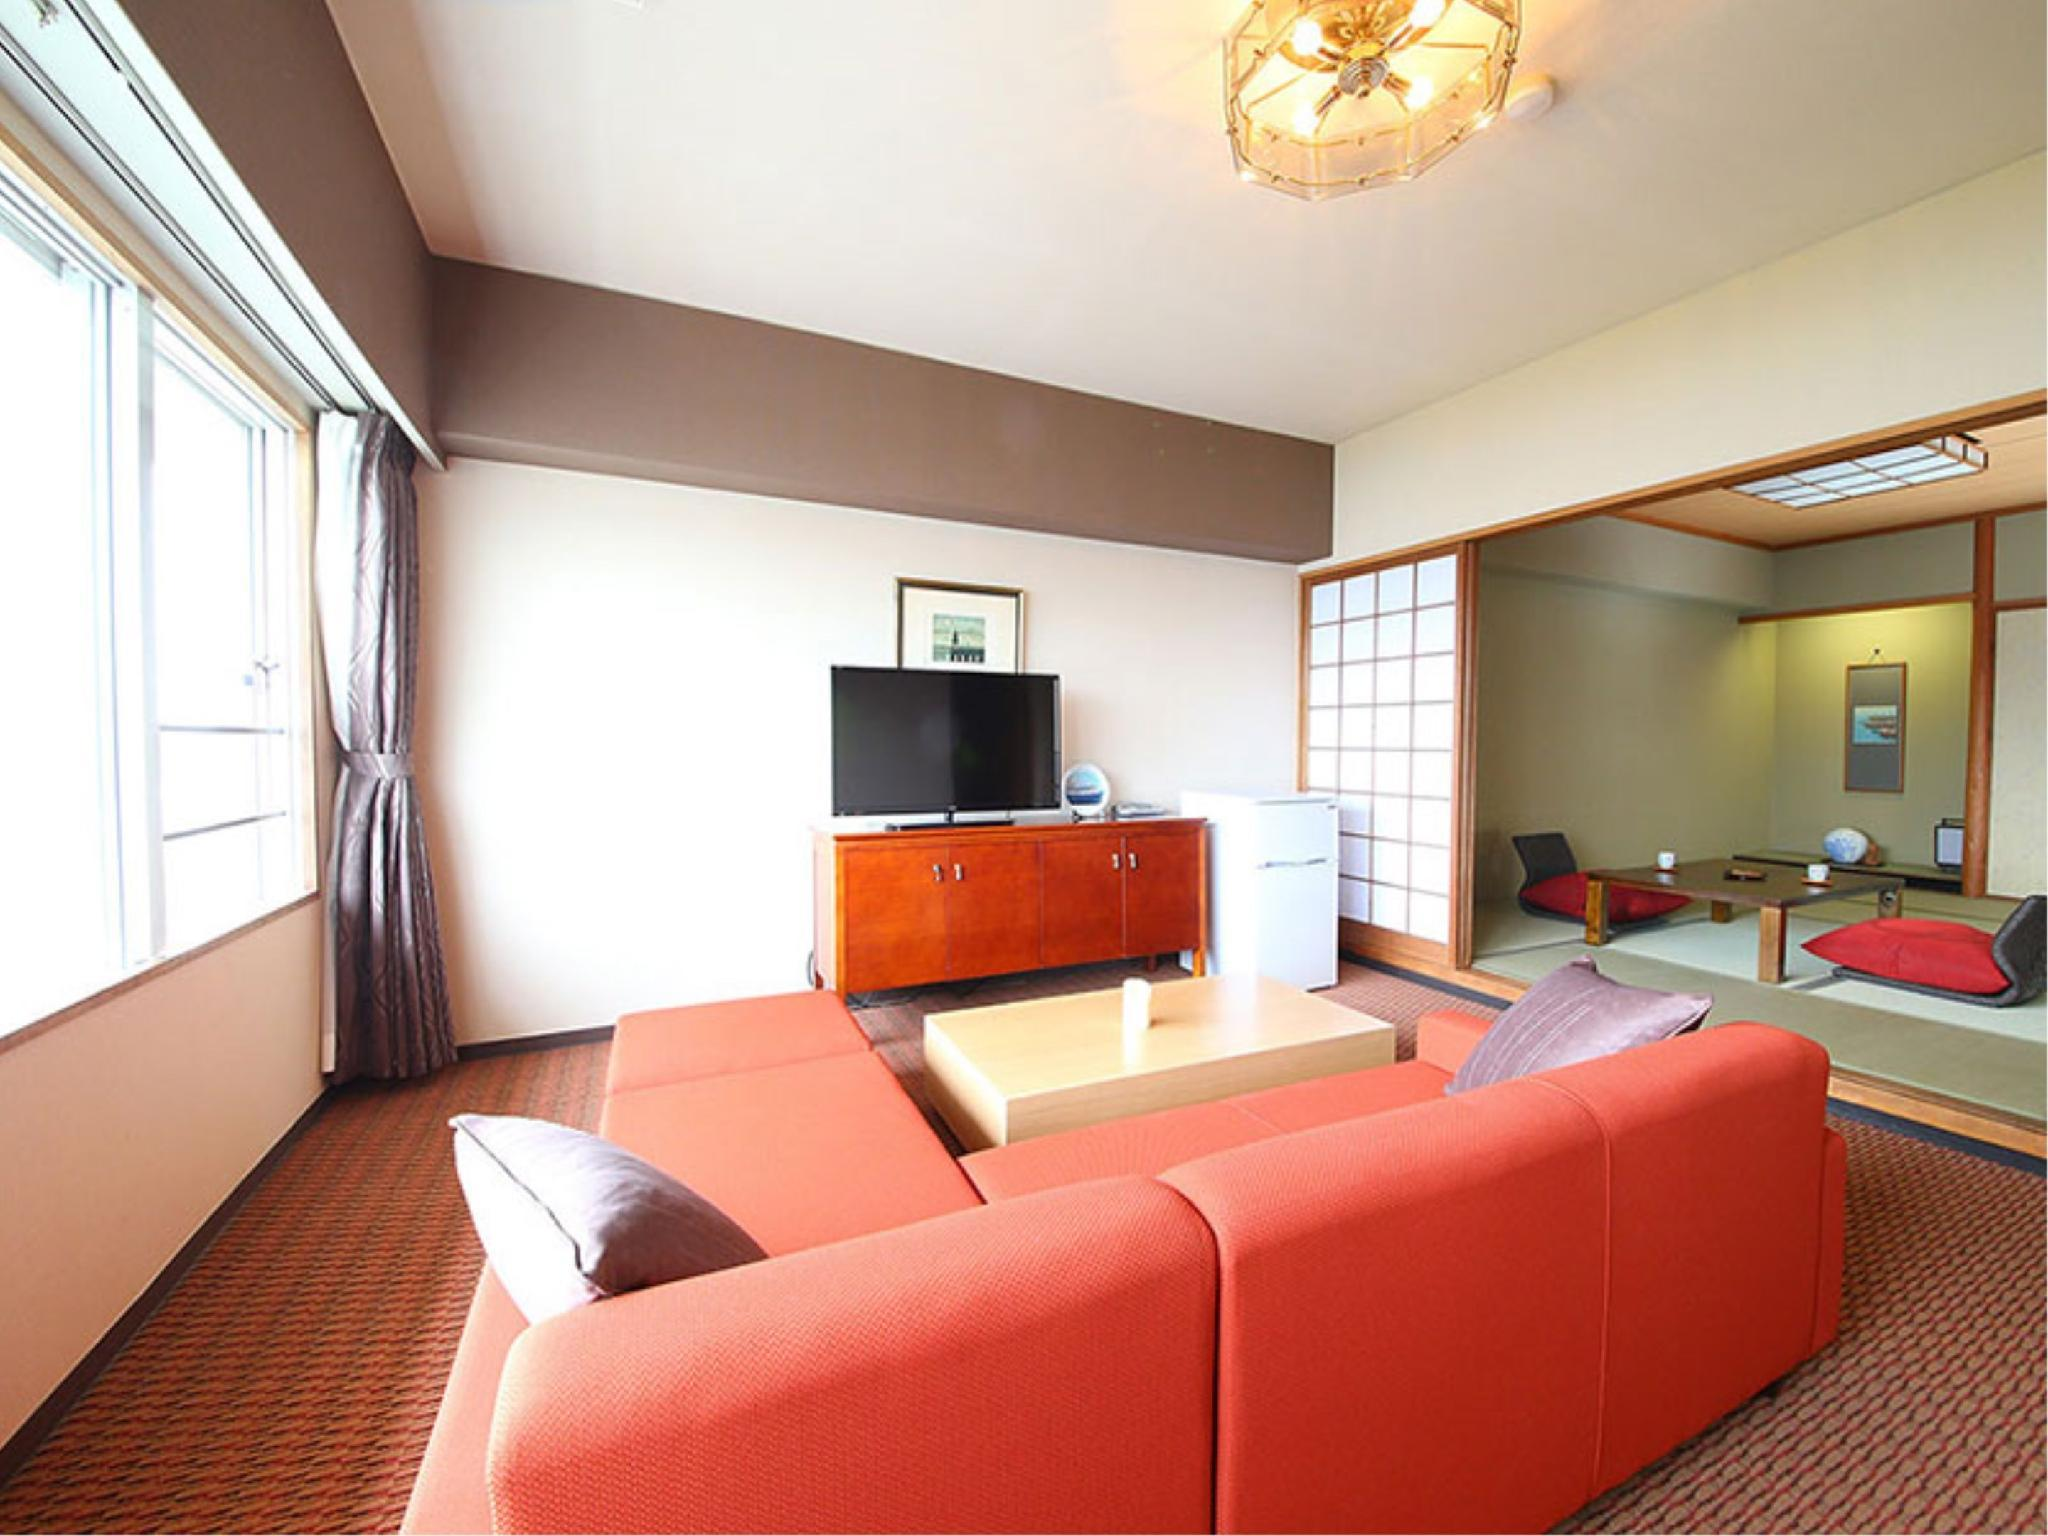 Special Room (Twin Room + Japanese-style Room + Living Room)